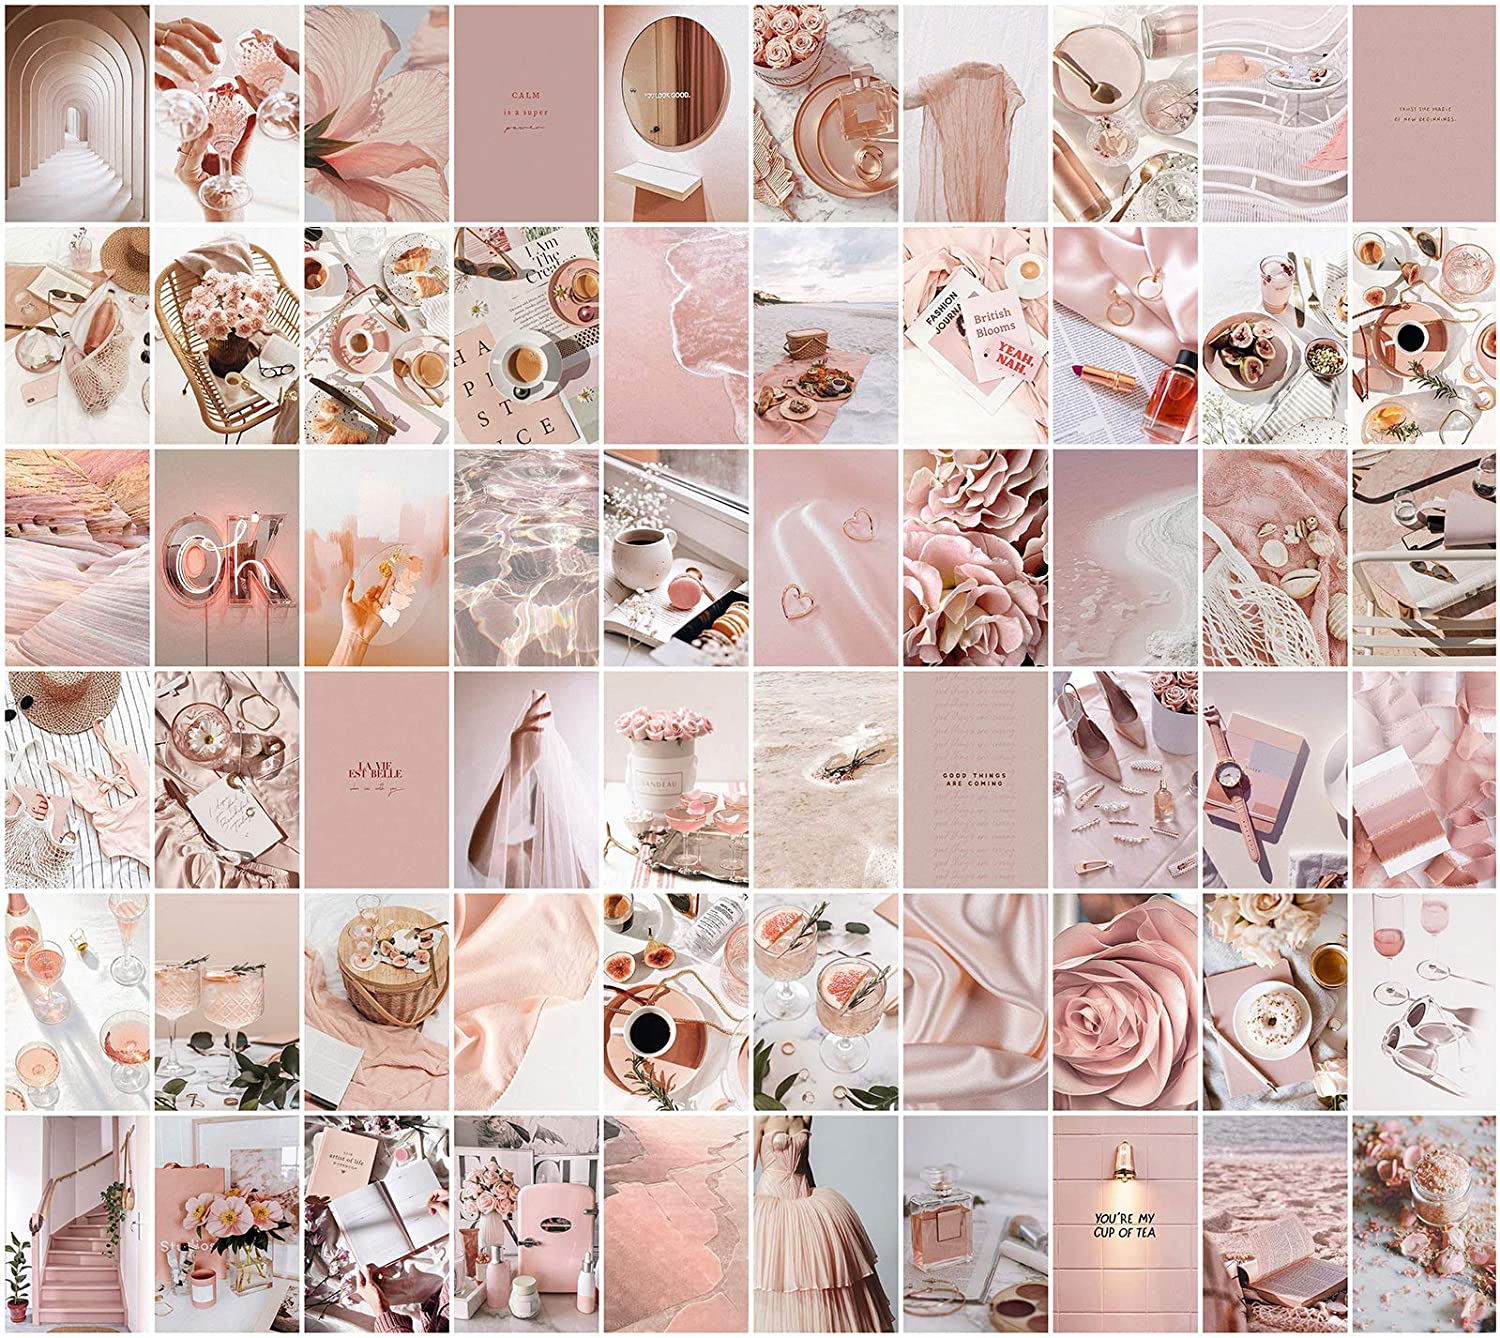 Wall Collage Kit Aesthetic Pictures, Pink Room Decor for Teen Girls, VSCO Posters for Bedroom, Dorm Photo Wall Art, Rosy Collage Prints Kits (60 Set 4x6 inch)